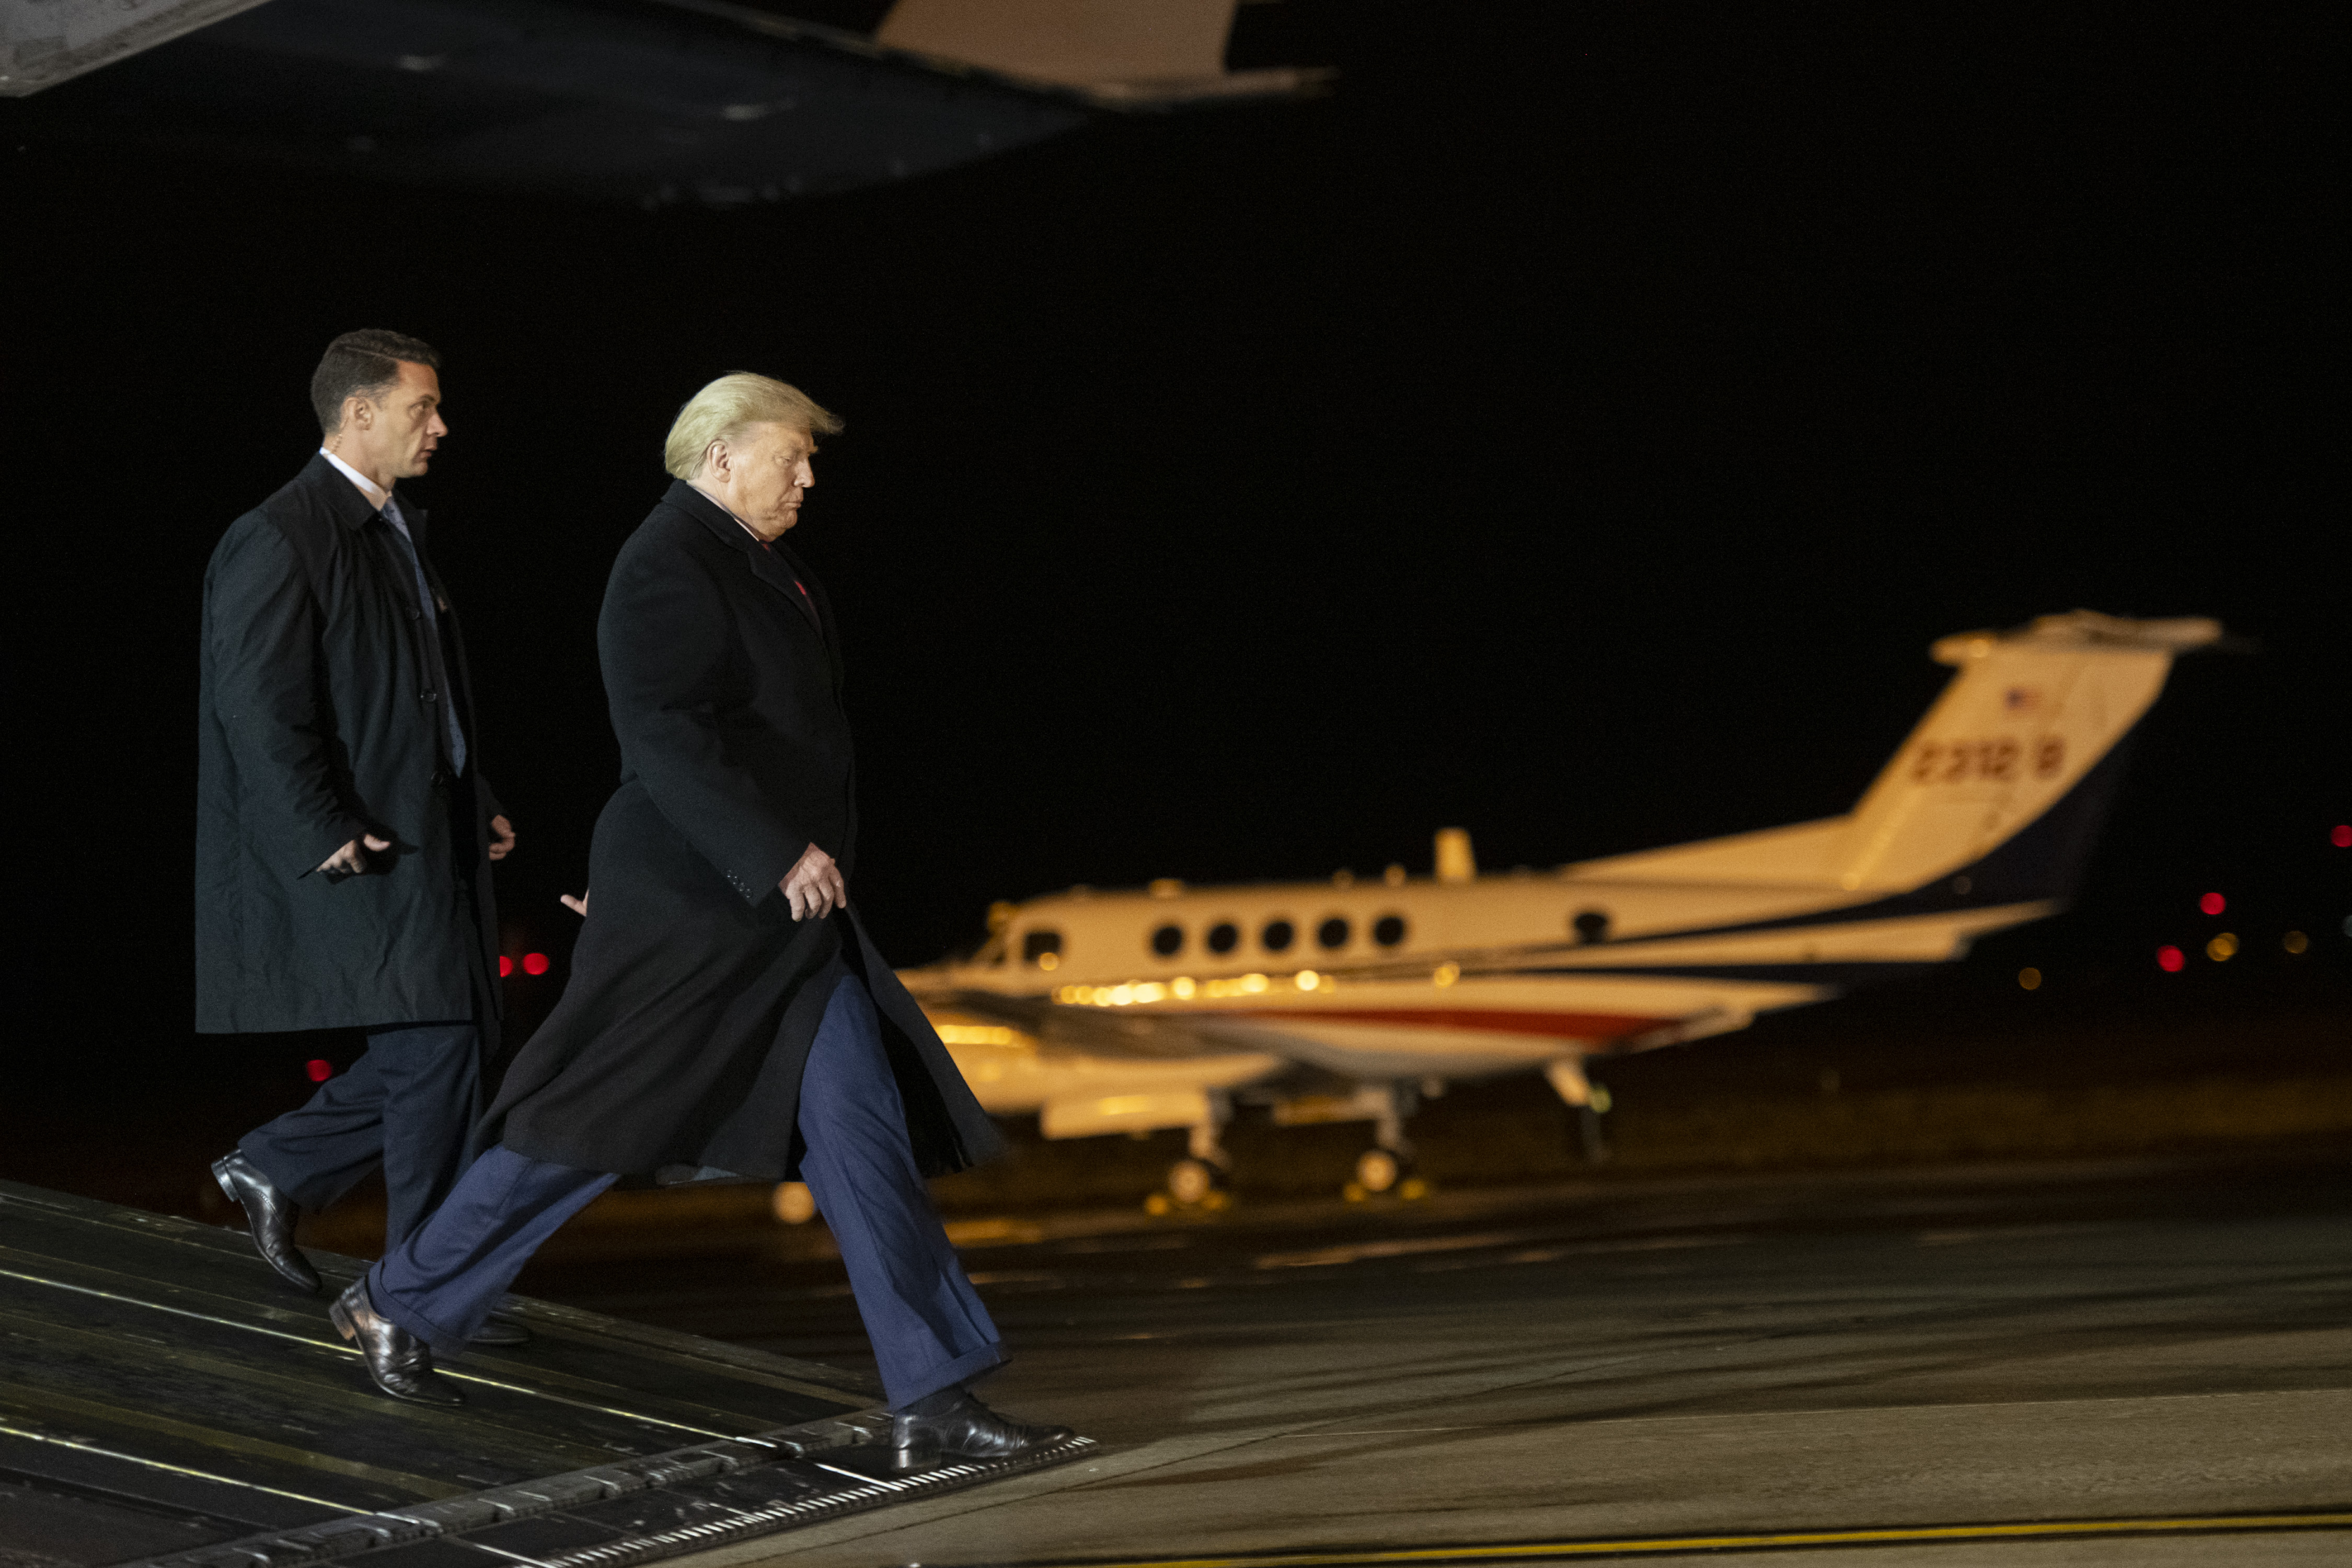 DOVER, DE - FEBRUARY 10: U.S. President Donald J. Trump descends a ramp from a C-17 aircraft while attending a dignified transfer for fallen service members U.S. Army Sgt. 1st Class Javier J. Gutierrez, 28, and Army Sgt. 1st Class Antonio R. Rodriguez, 28, at Dover Air Force Base on February 10, 2020 in Dover, Delaware. Both soldiers were killed in an attack in the Nangarhar province of Afghanistan on Saturday, according to a Department of Defense release. (Photo by Mark Makela/Getty Images)